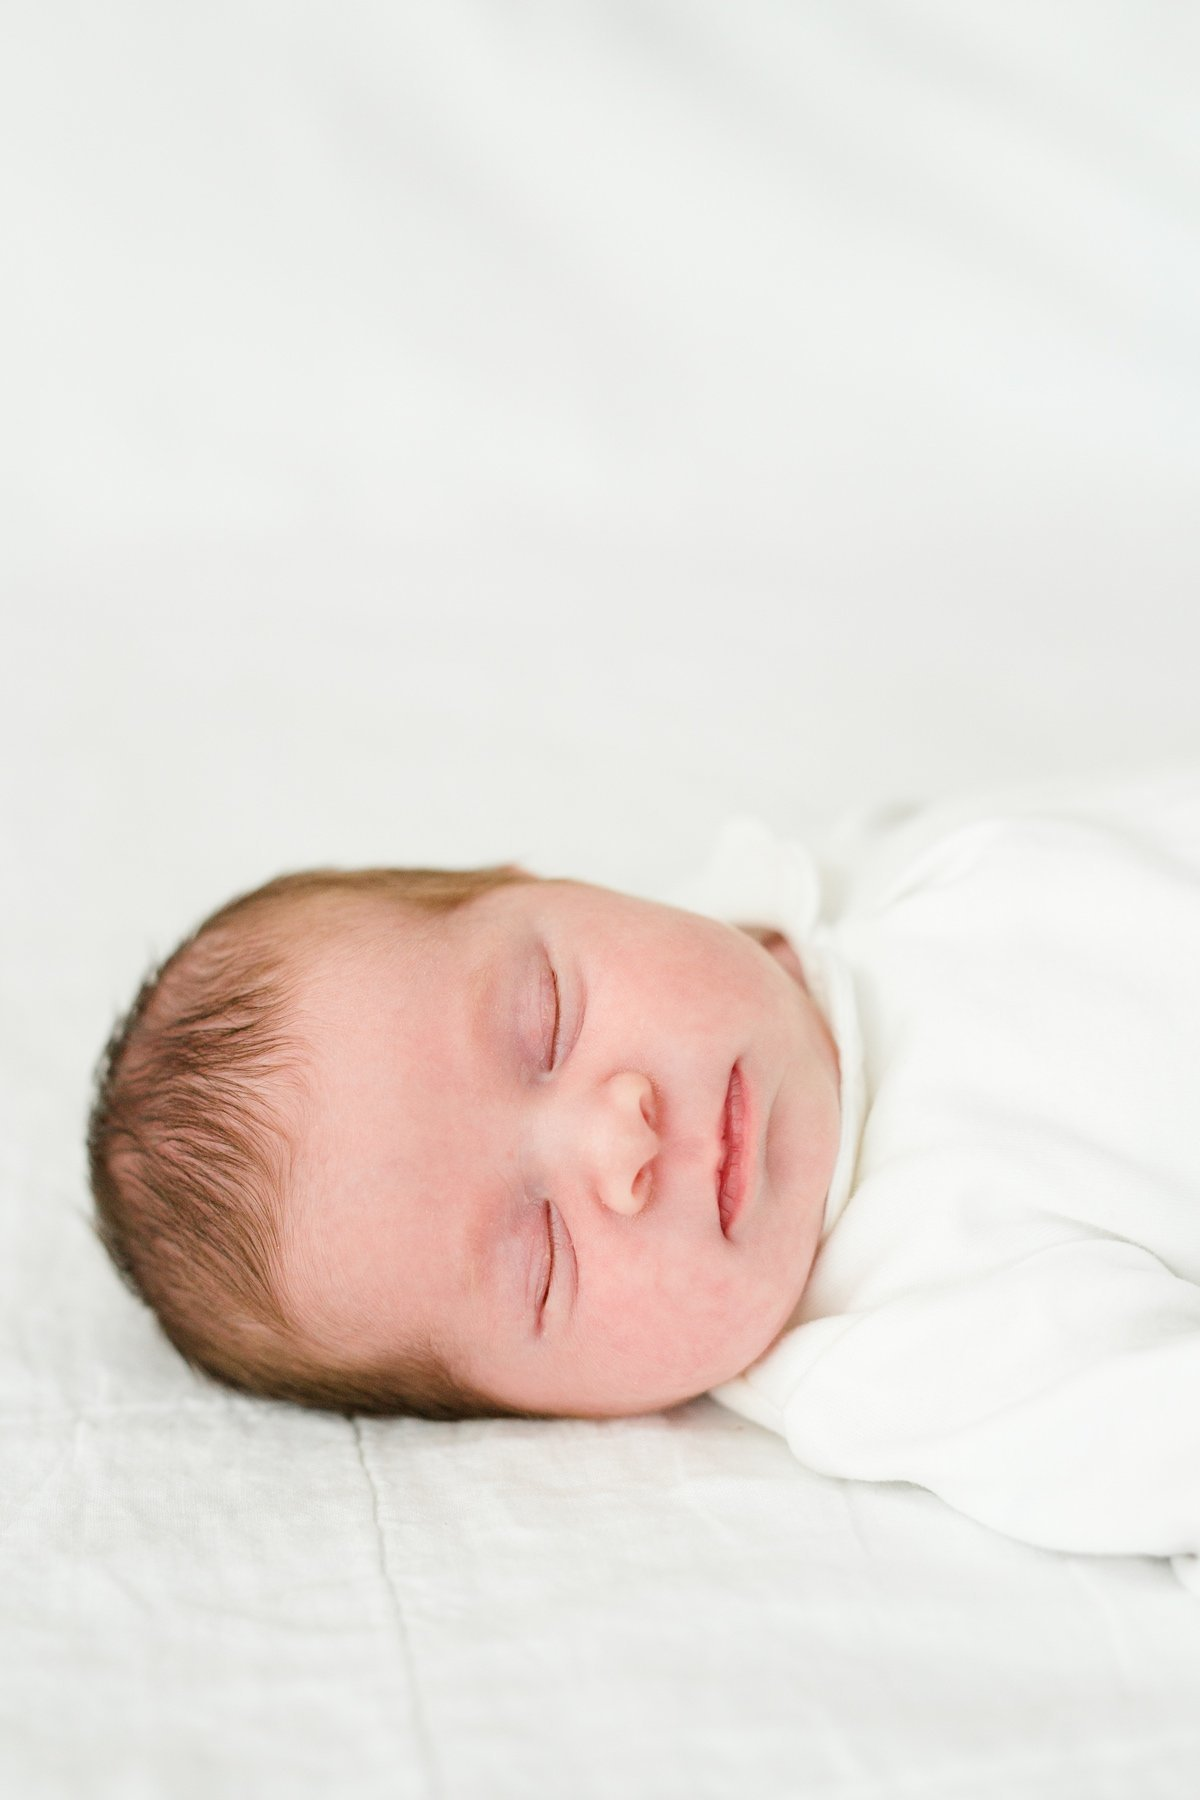 seattle-lifestyle-newborn-50_1200